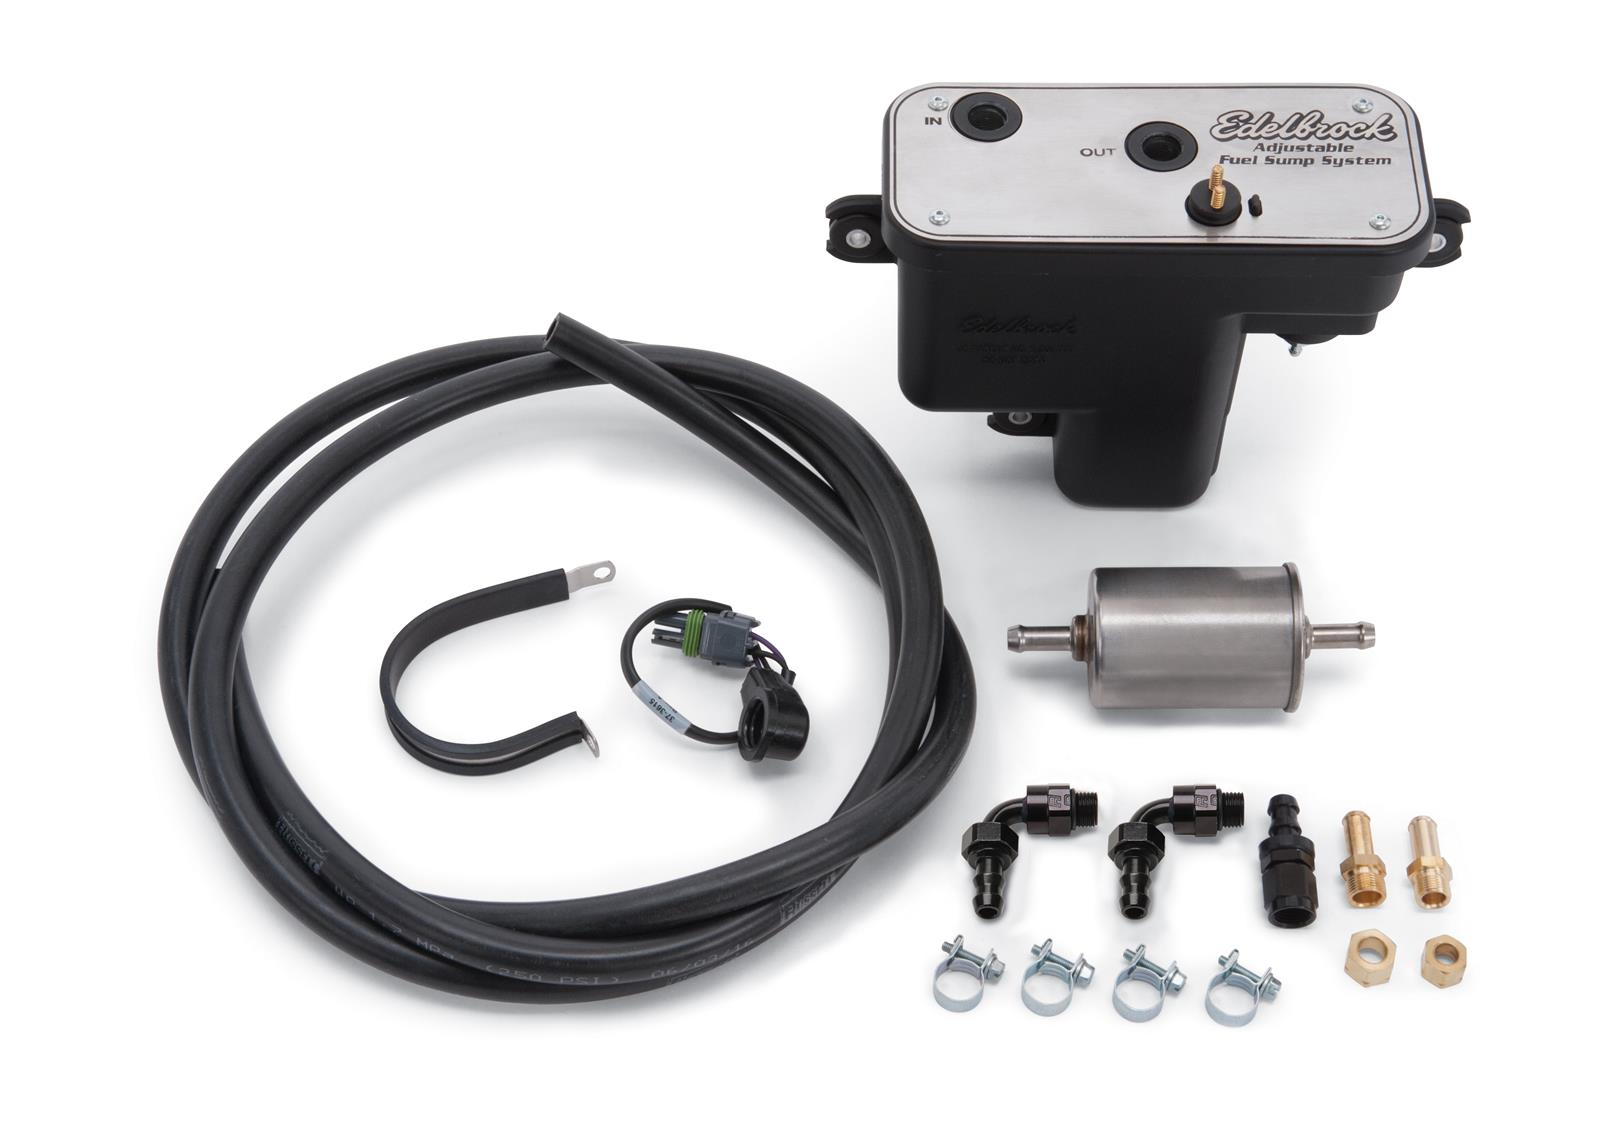 Edelbrock Universal Efi Sump Fuel Systems 36031 Free Shipping On Orders Over 99 At Summit Racing